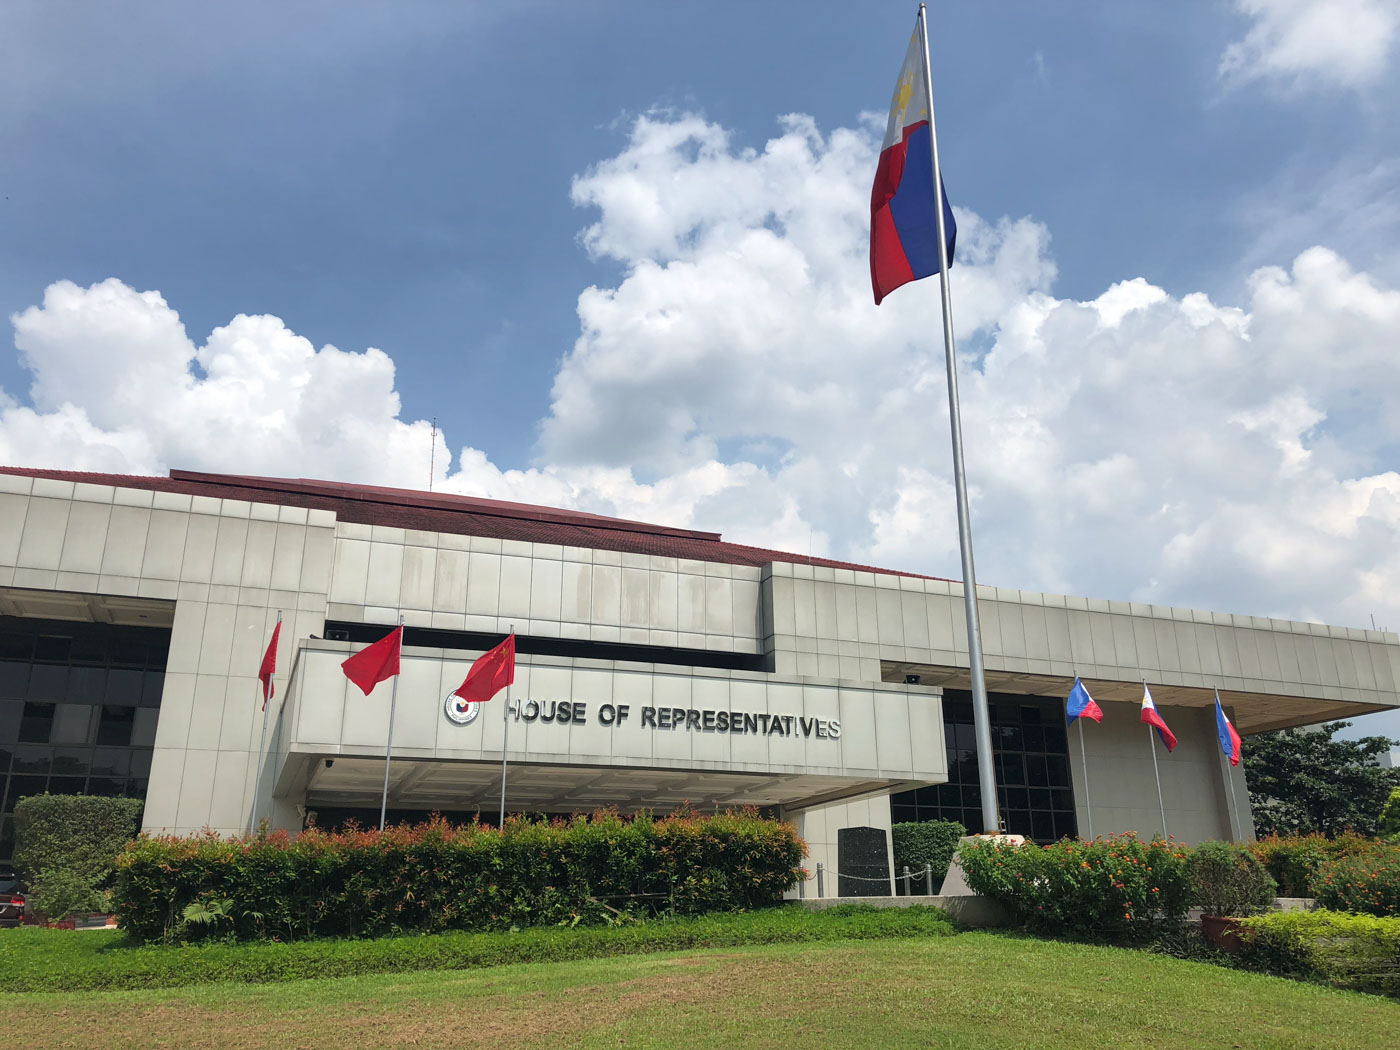 PH-CHINA. Four Philippine flags are raised beside the 3 Chinese flags. Photo by Mara Cepeda/Rappler